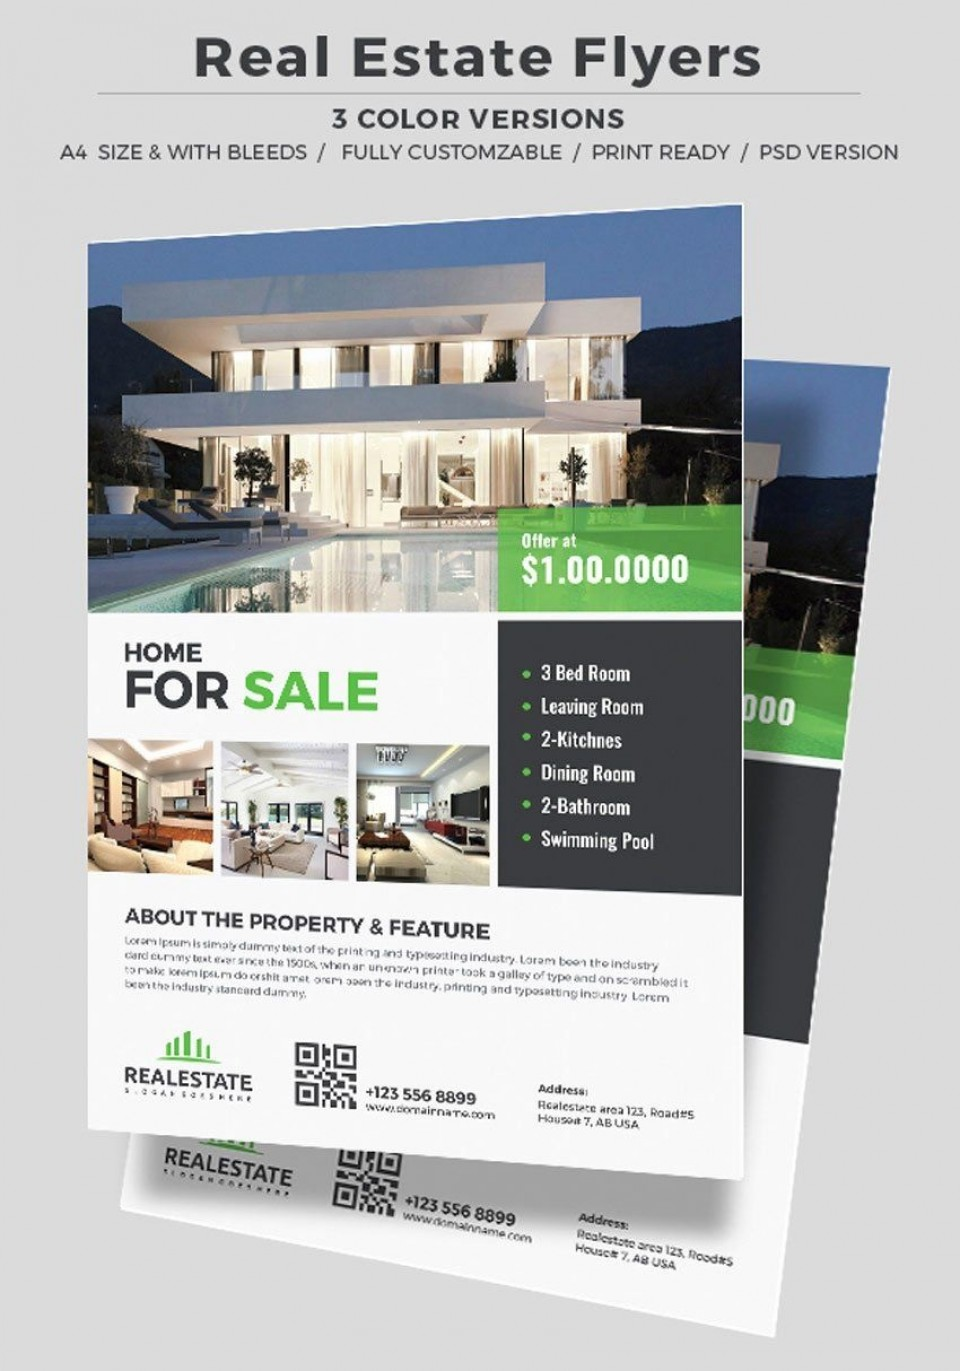 002 Unforgettable Real Estate Advertising Template Photo  Facebook Ad Craigslist960